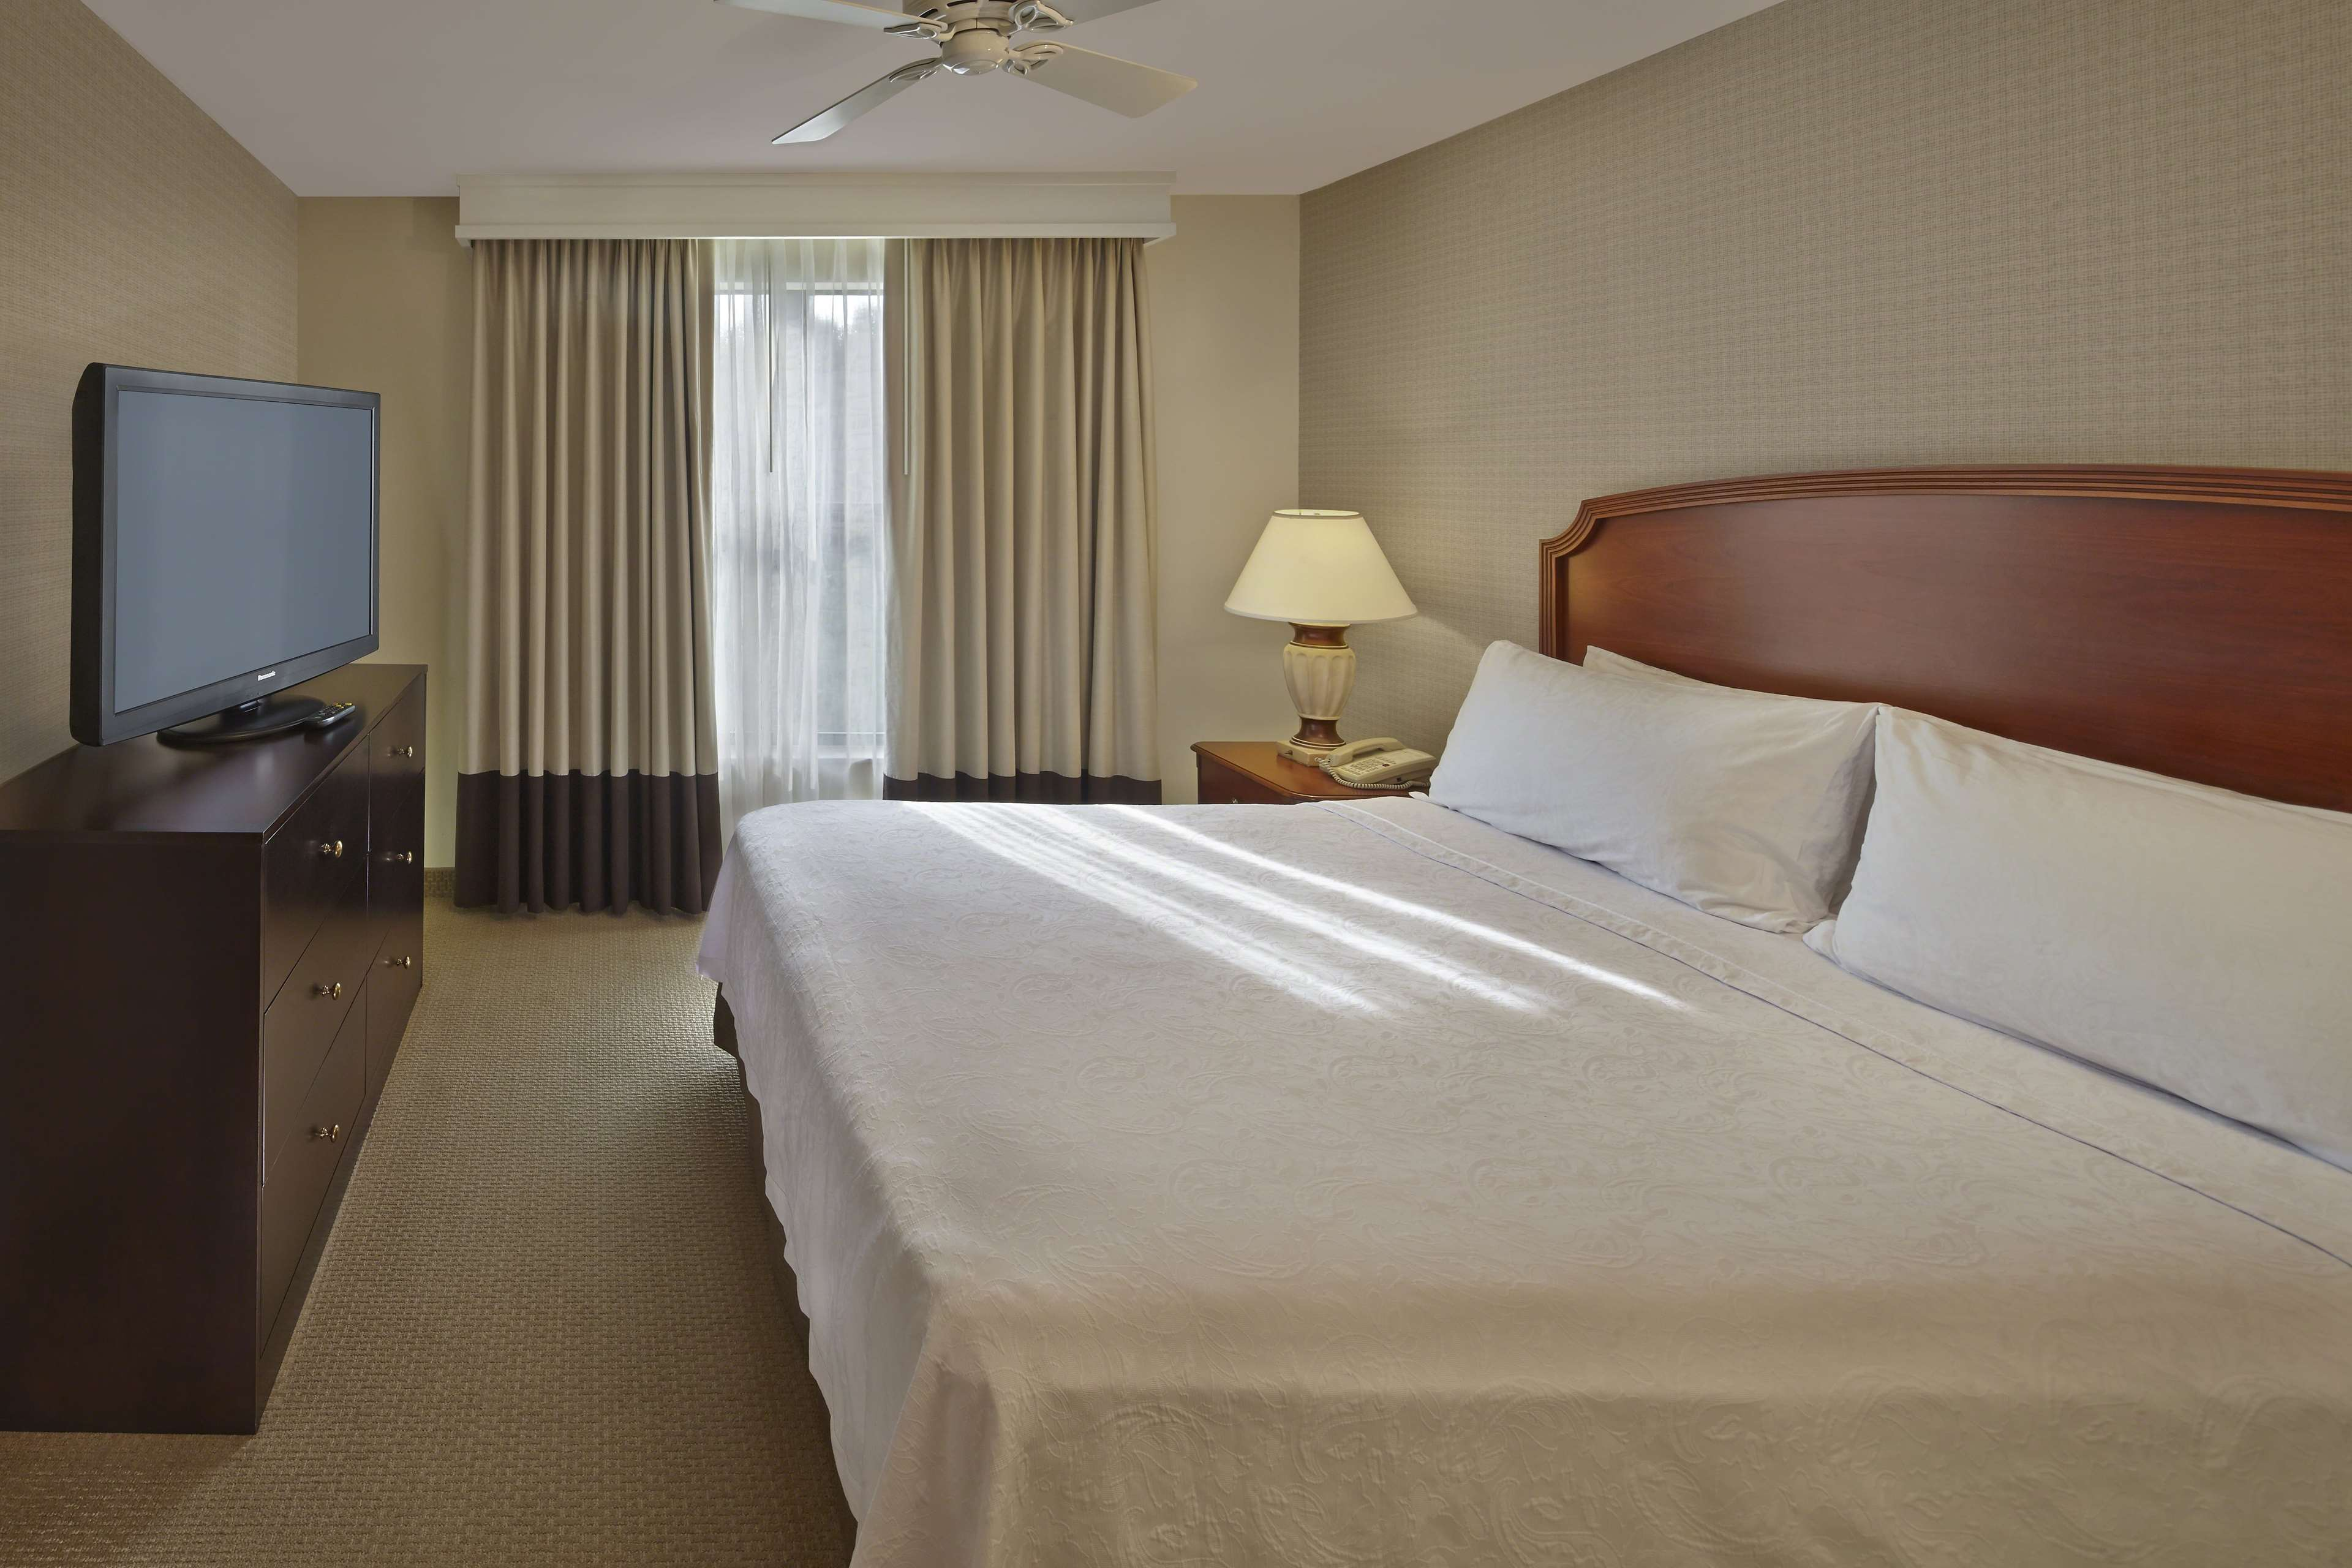 Homewood Suites by Hilton Columbia image 11